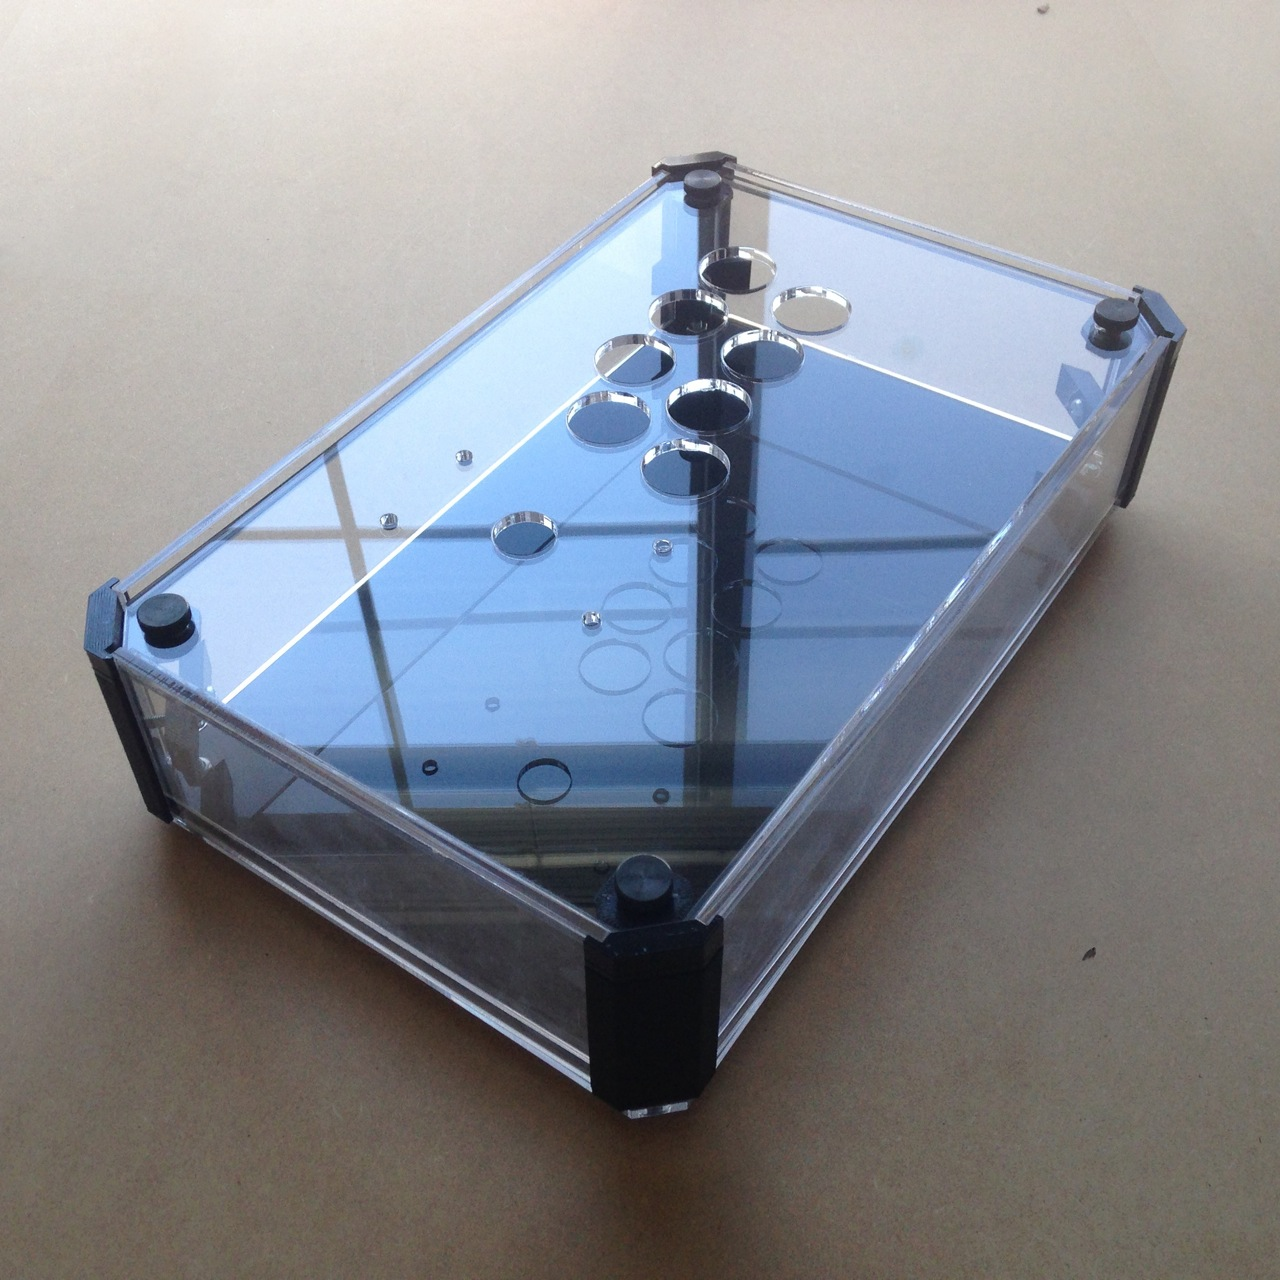 Clear acrylic frame with 3D printed ABS corners